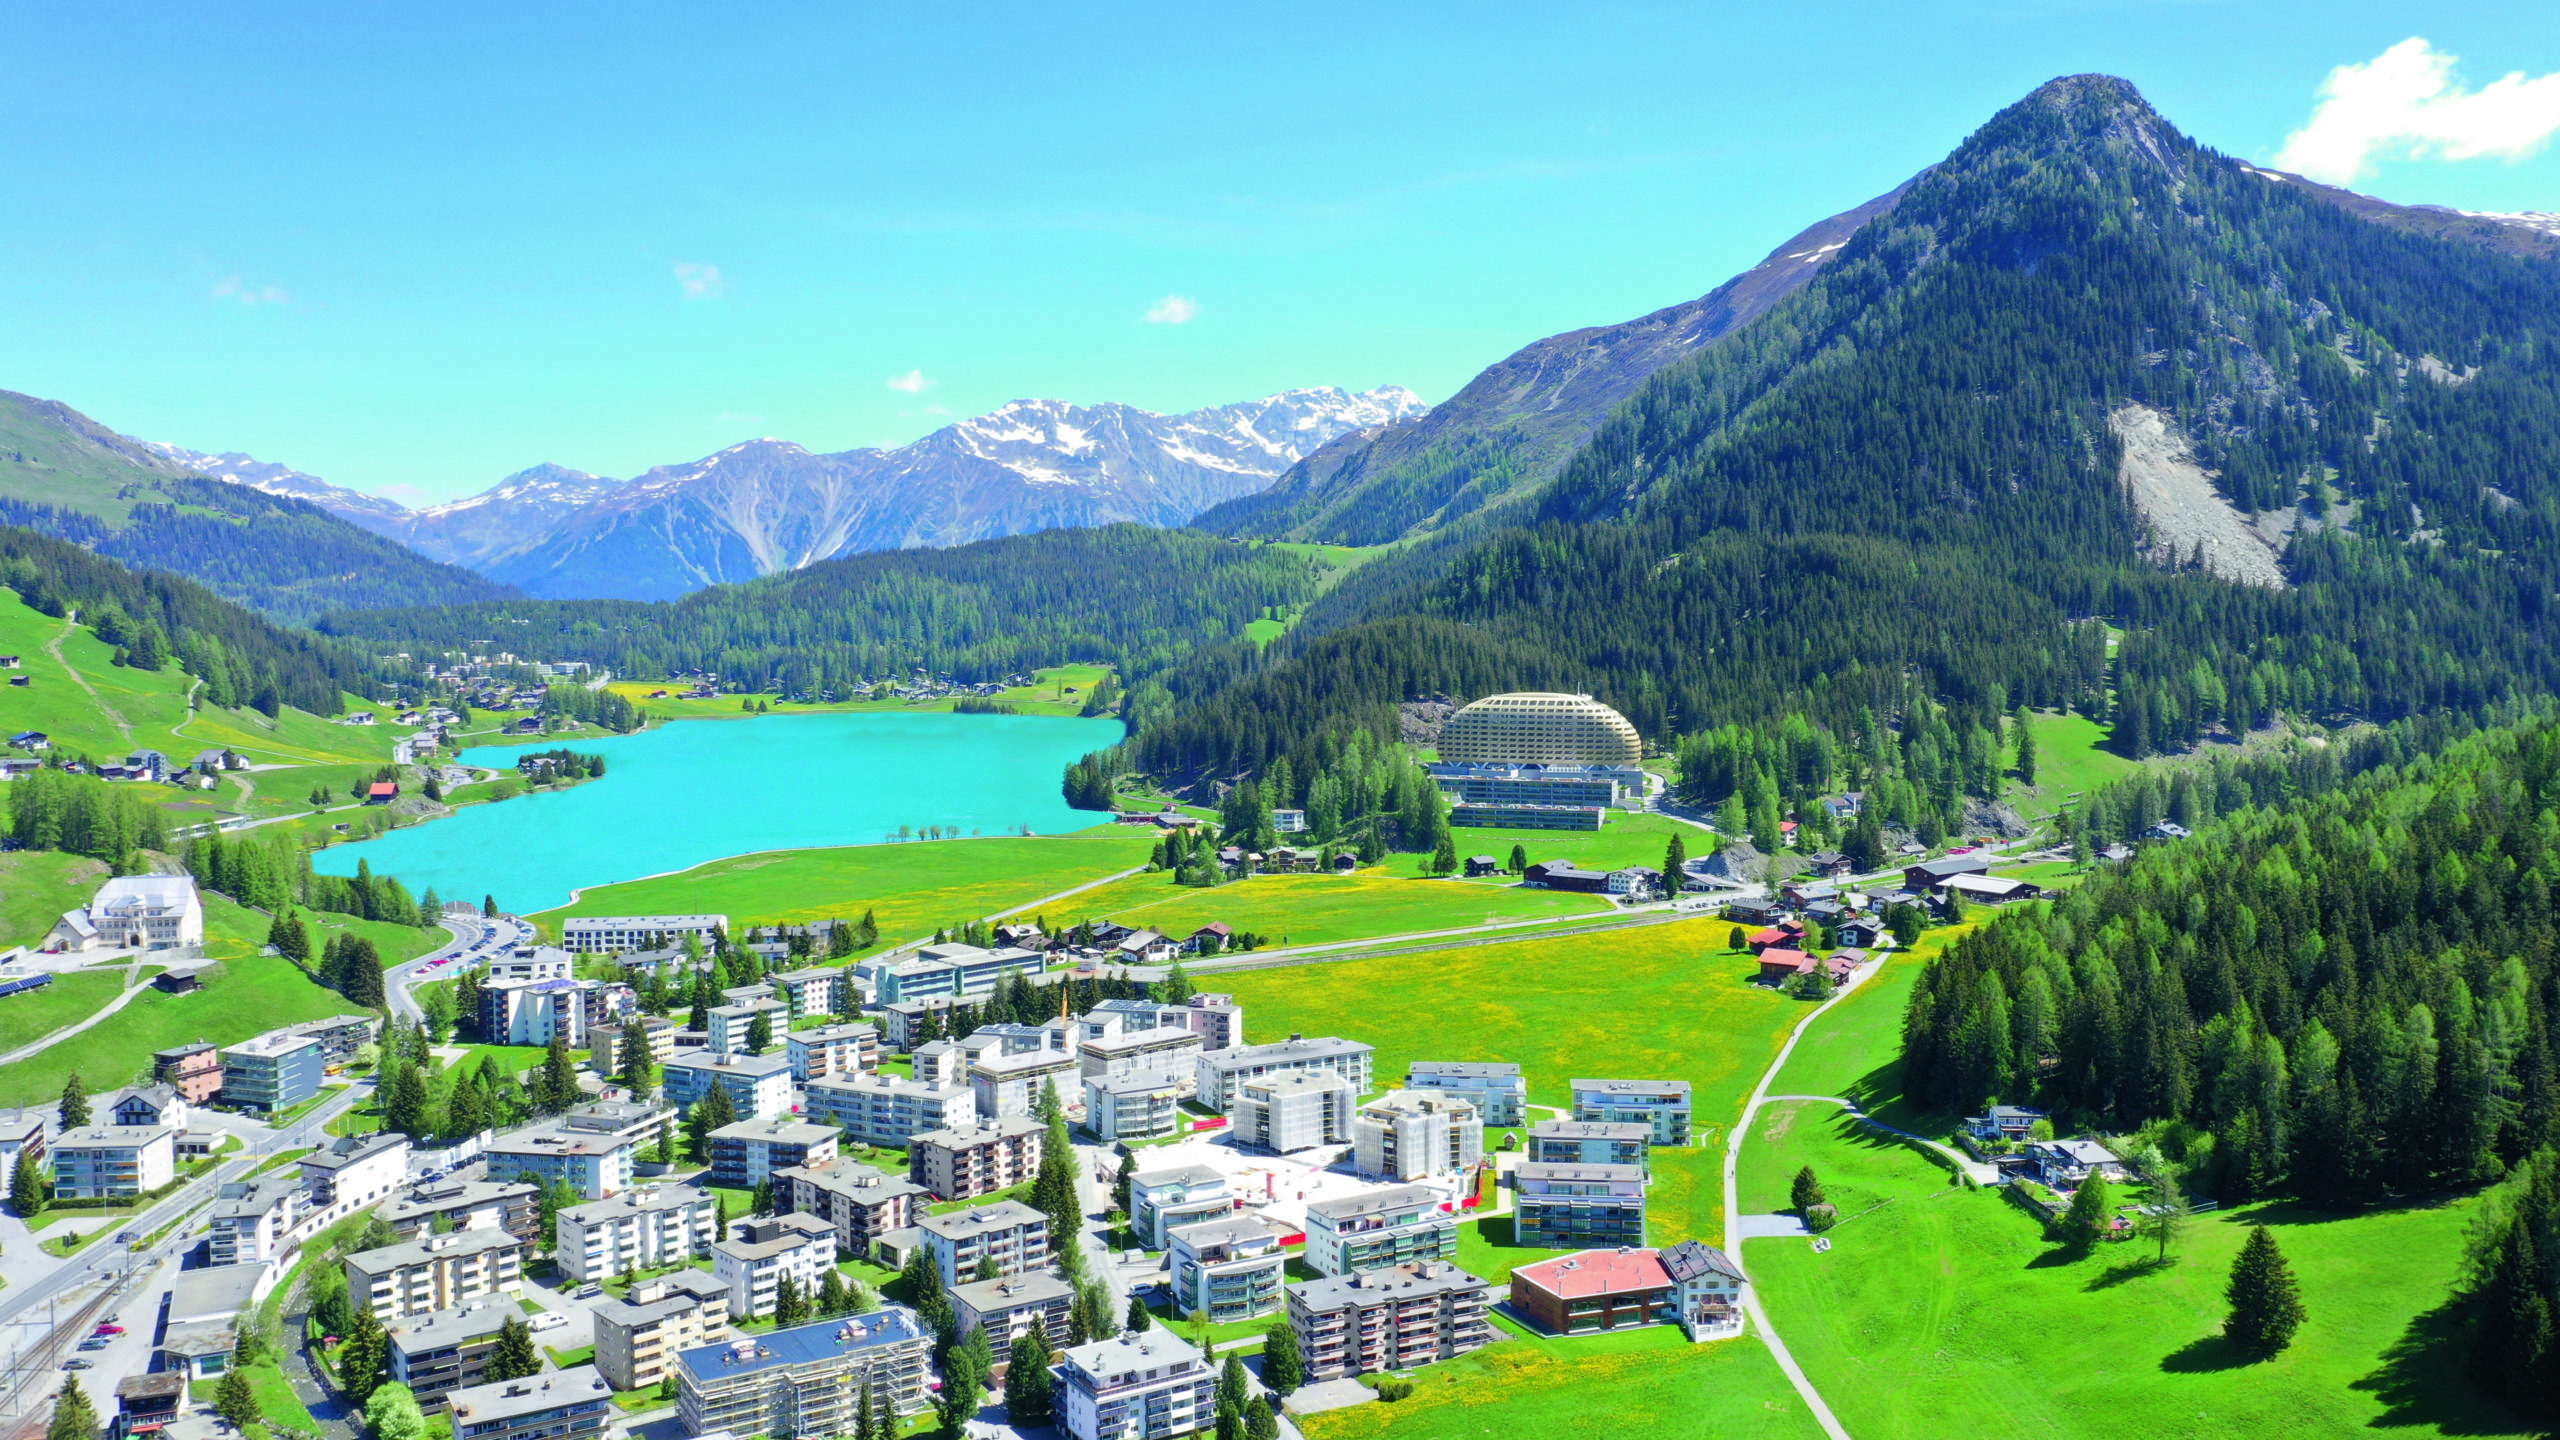 Meet Resistell in Davos on 21.10.2021 at the 4th Swiss Symposium in Point-of-Care Diagnostics